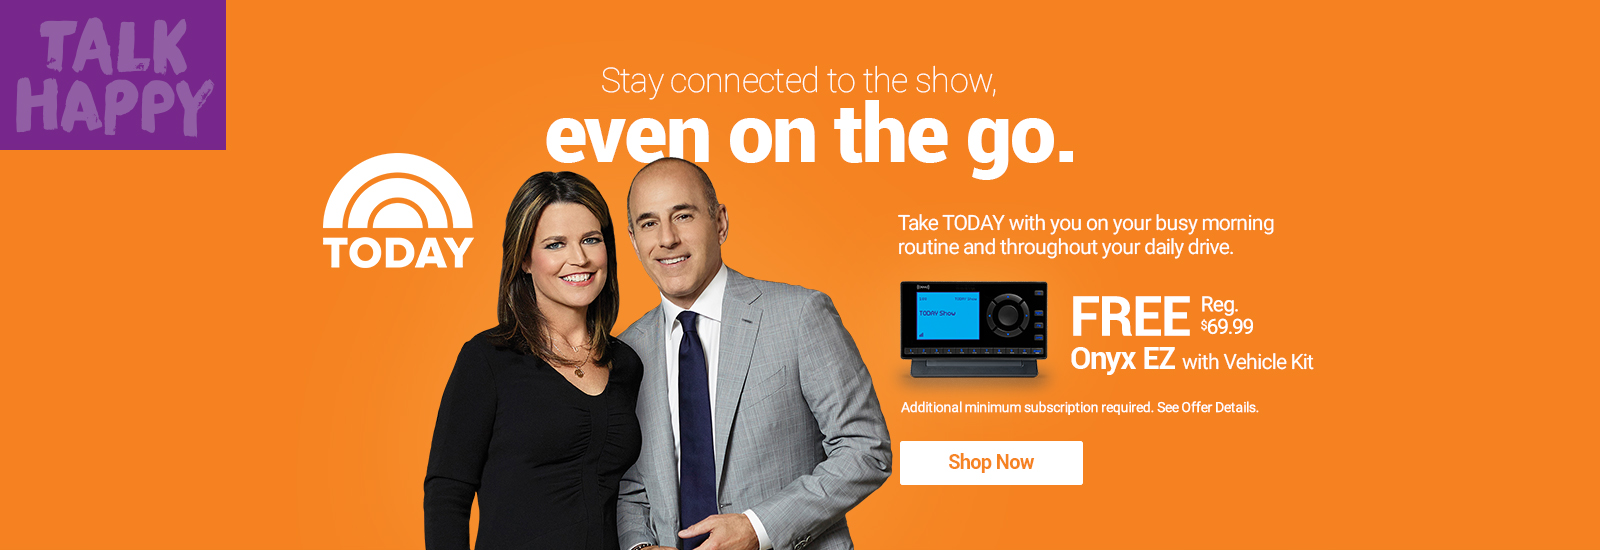 Hear the Today Show On SiriusXM with Free Onyx EZ with Vehicle Kit Radio